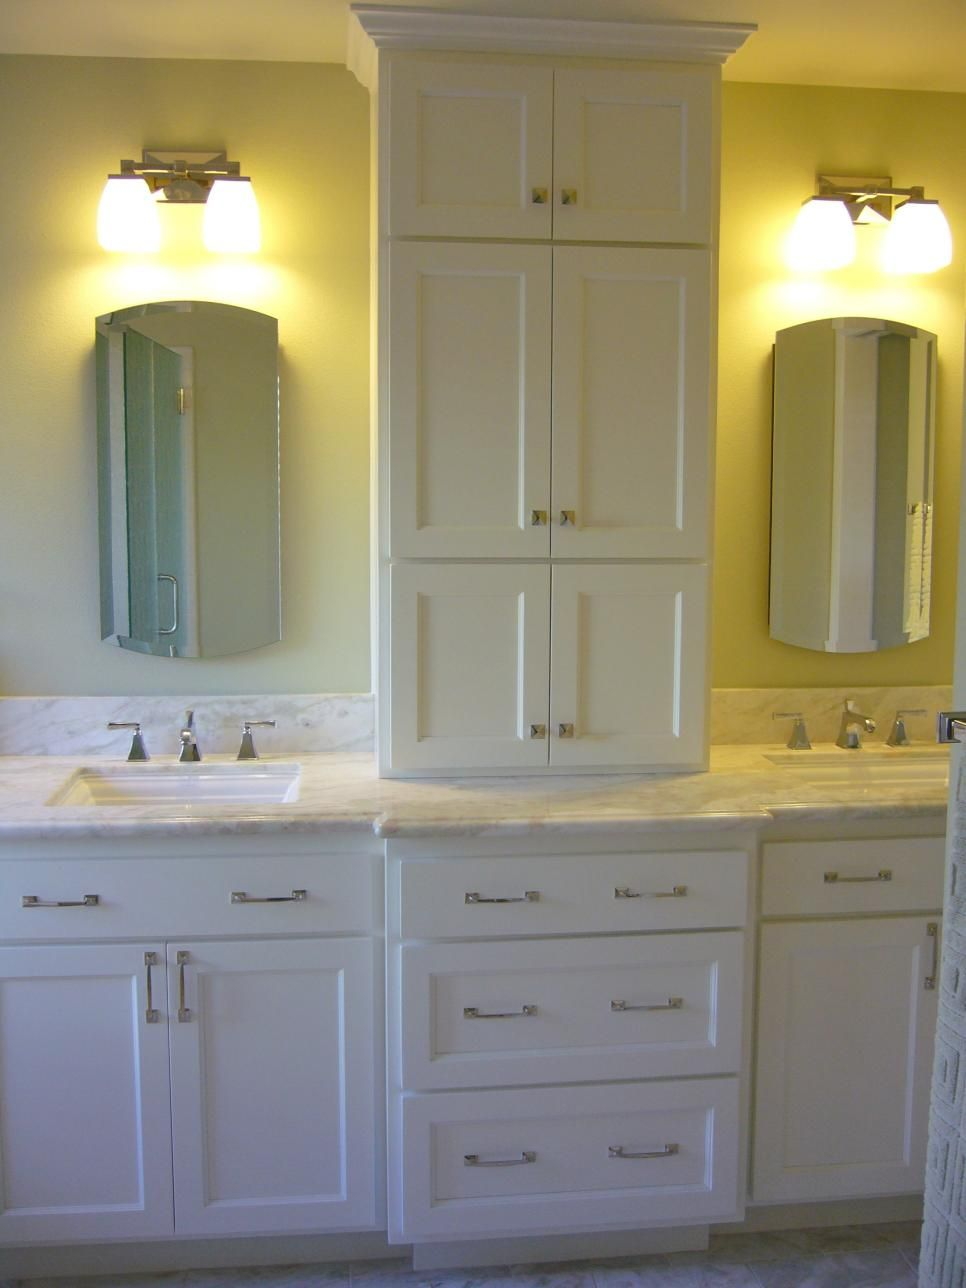 Bathroom vanity towers - Bathroom Vanities For Any Style